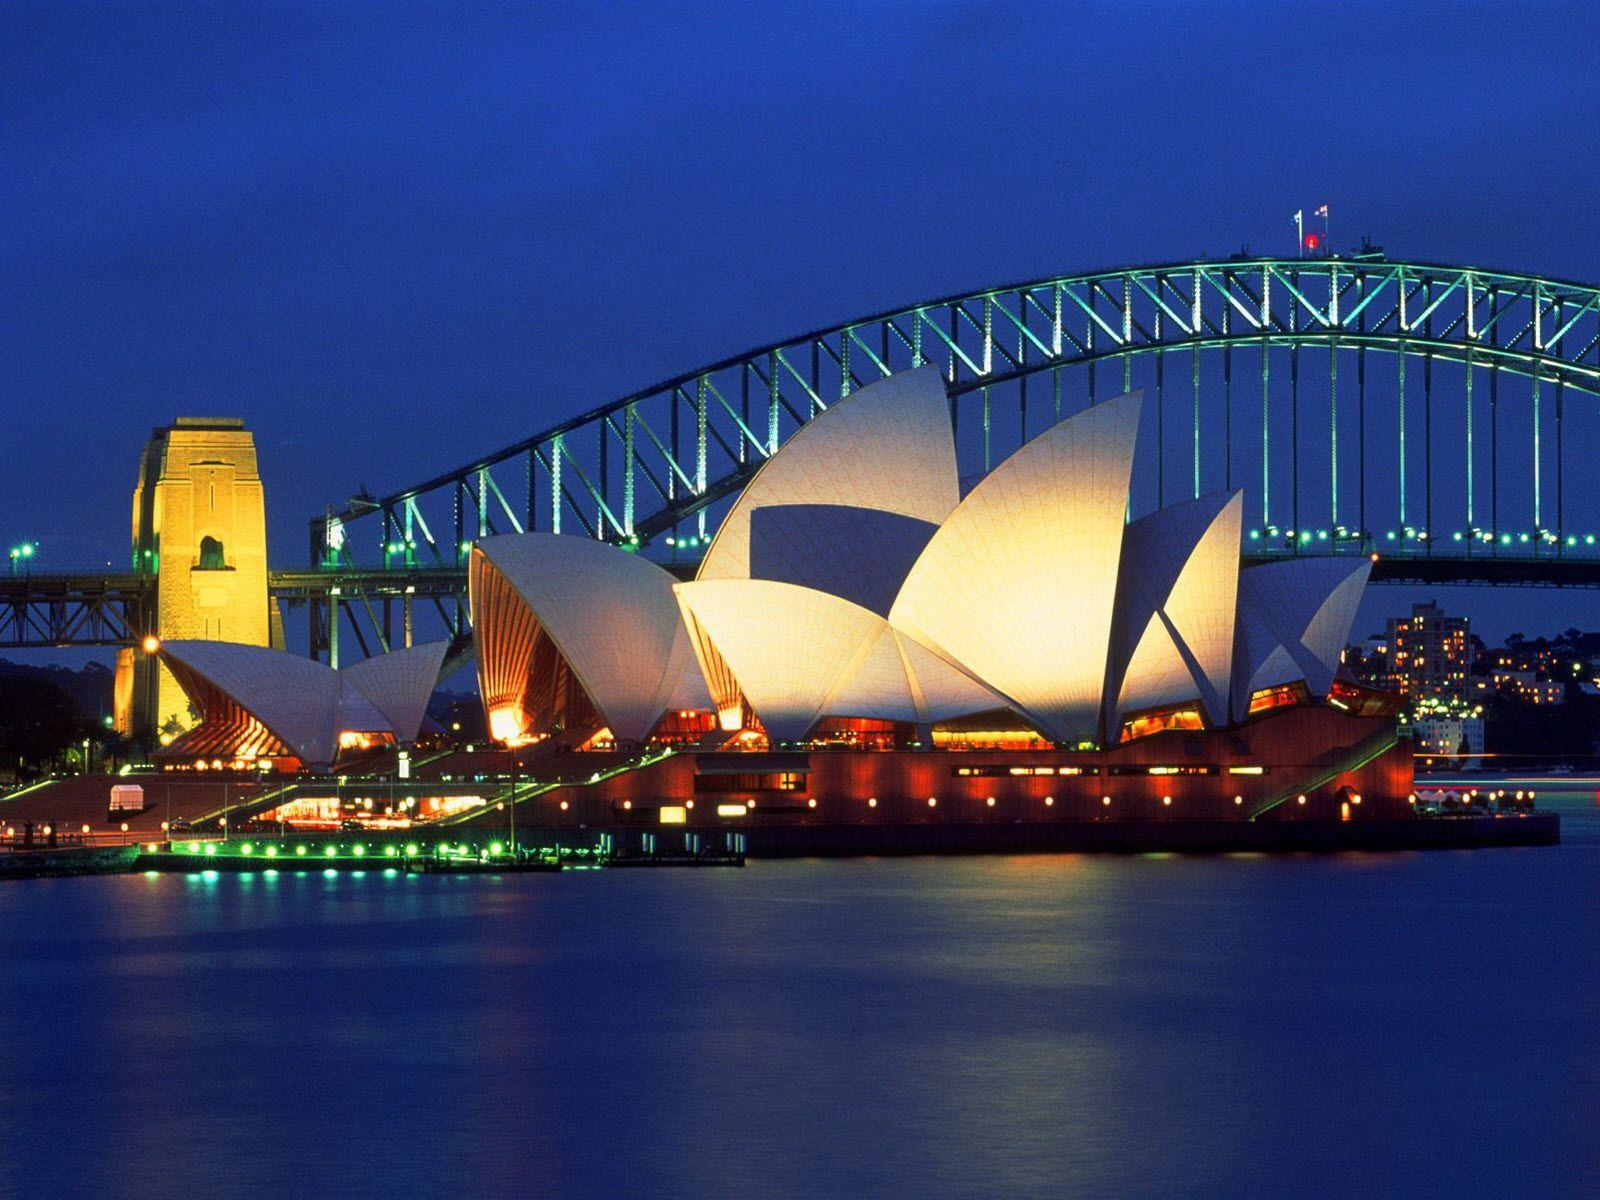 Sydney Opera House, Australia Wallpapers | HD Wallpapers | ID #5996